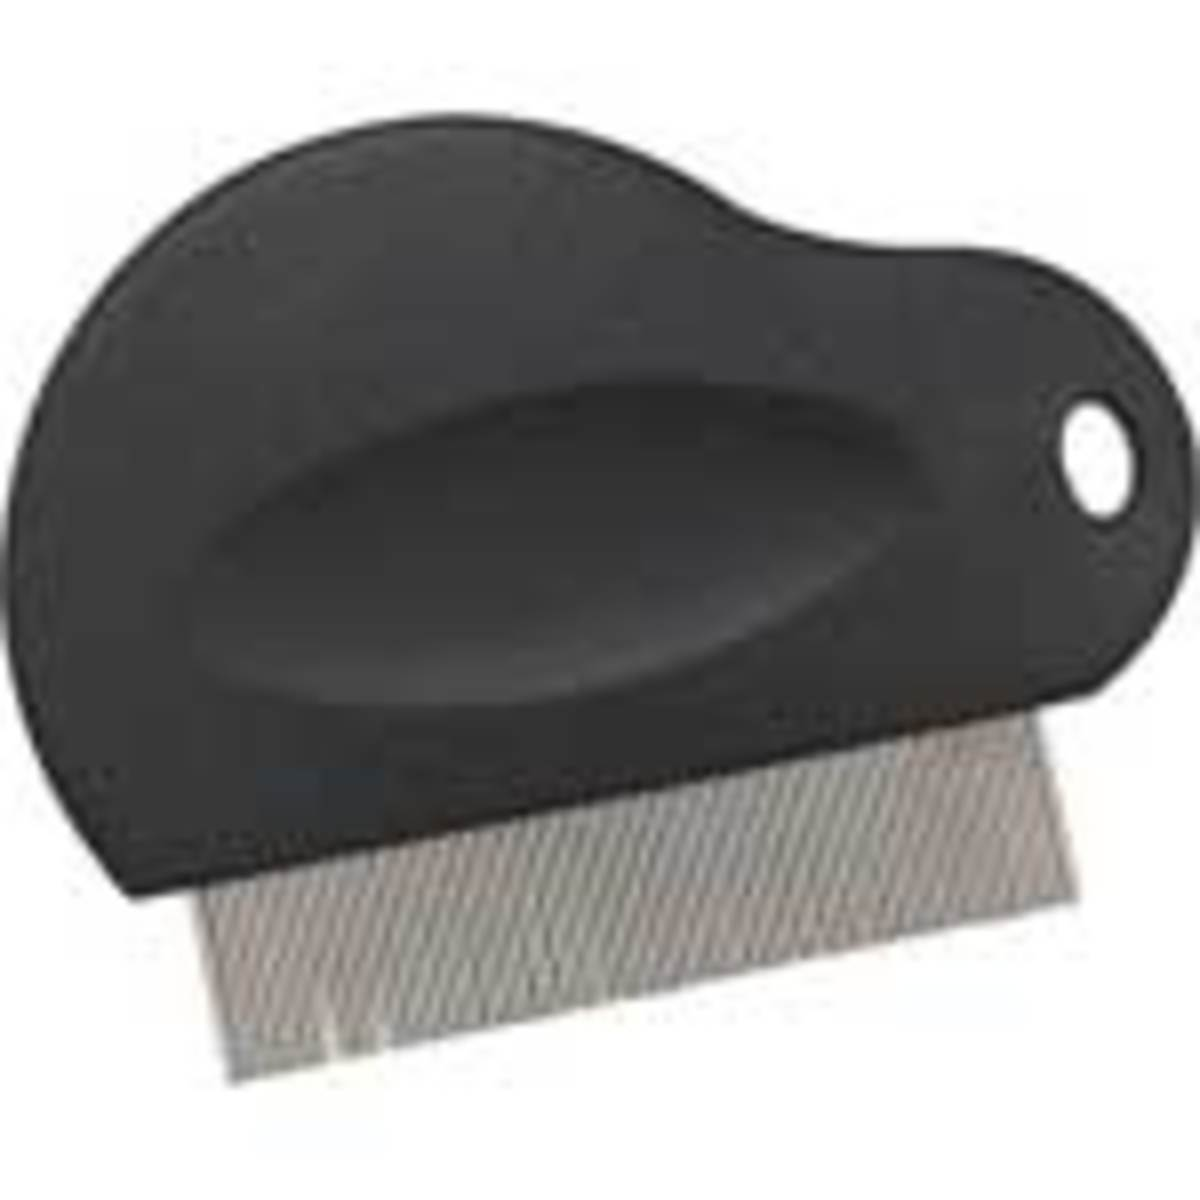 Flea comb w/ metal tines (teeth)